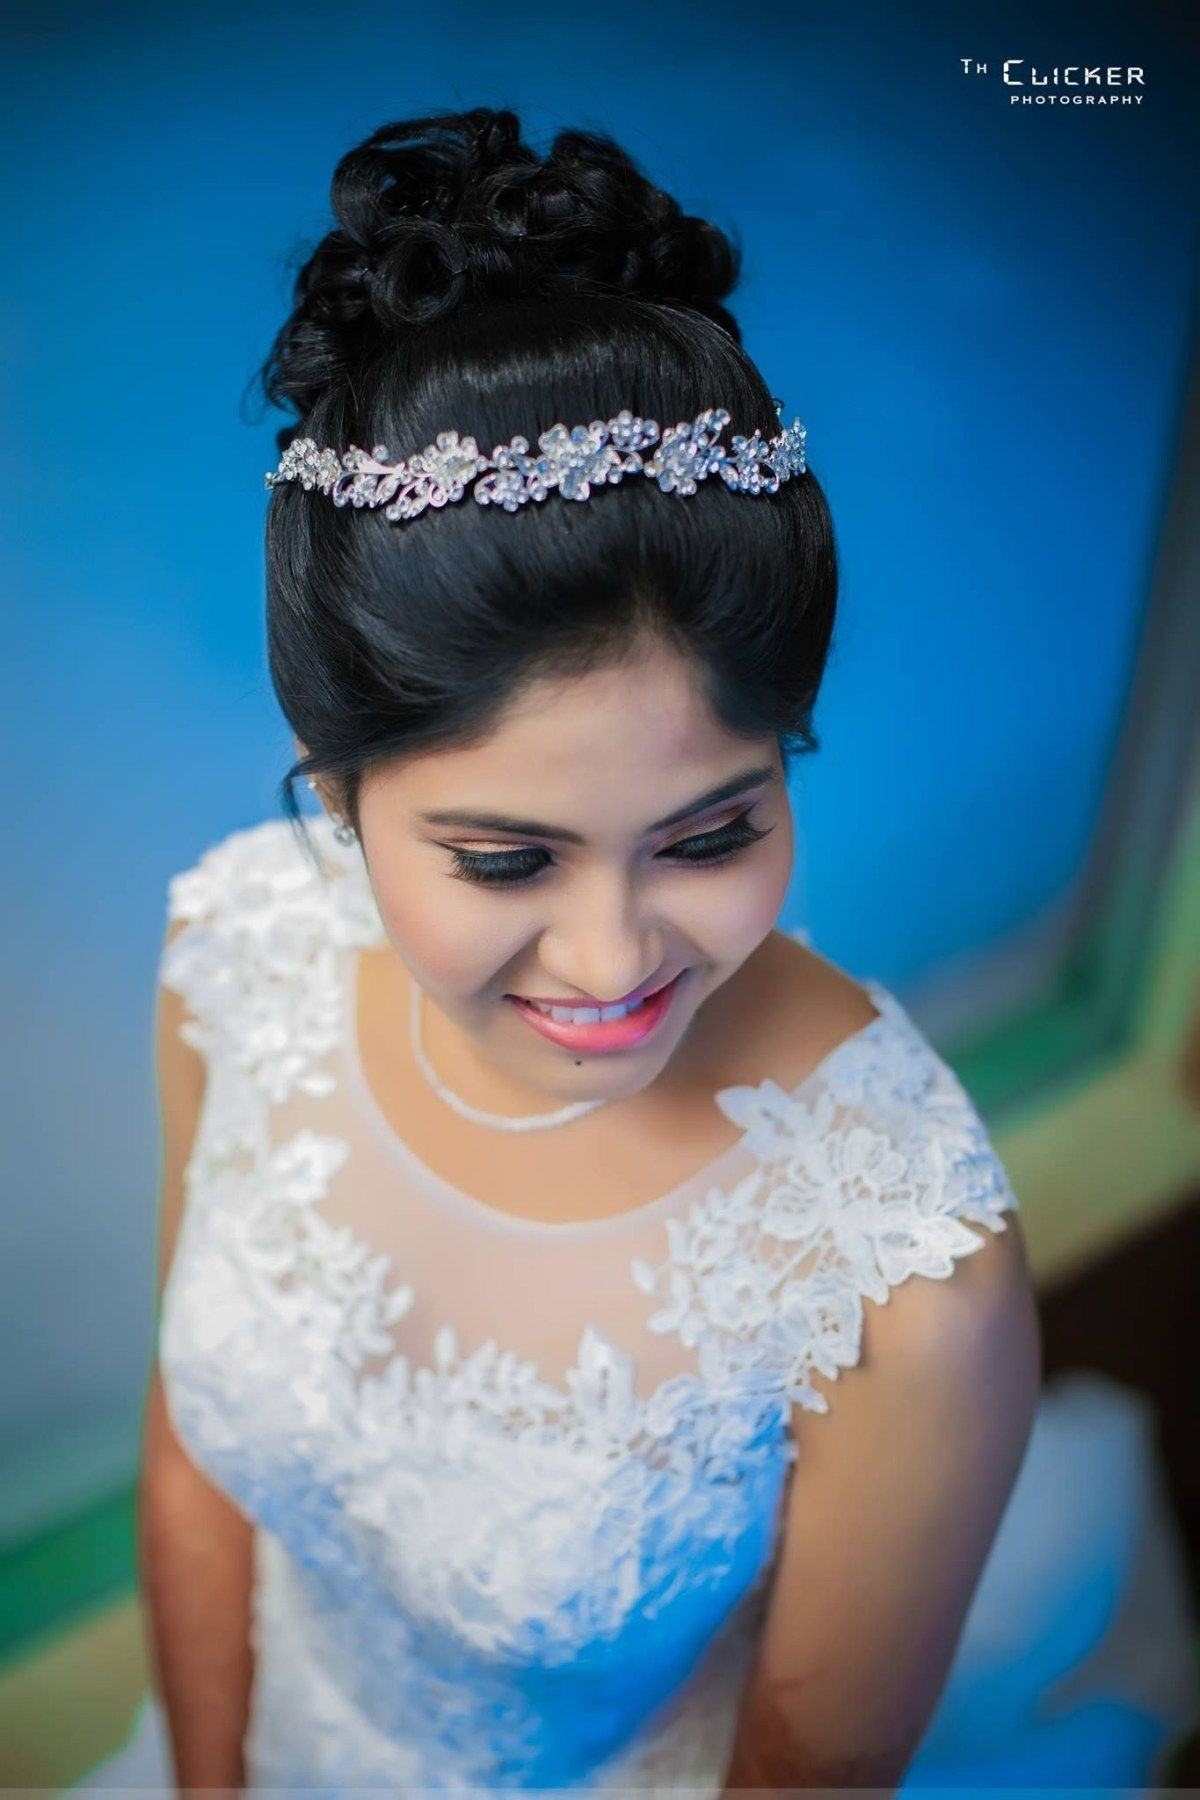 26 Populer Christian Wedding Hairstyle For Gown Christian Wedding Dress Christian Bride Christian Wedding Gowns